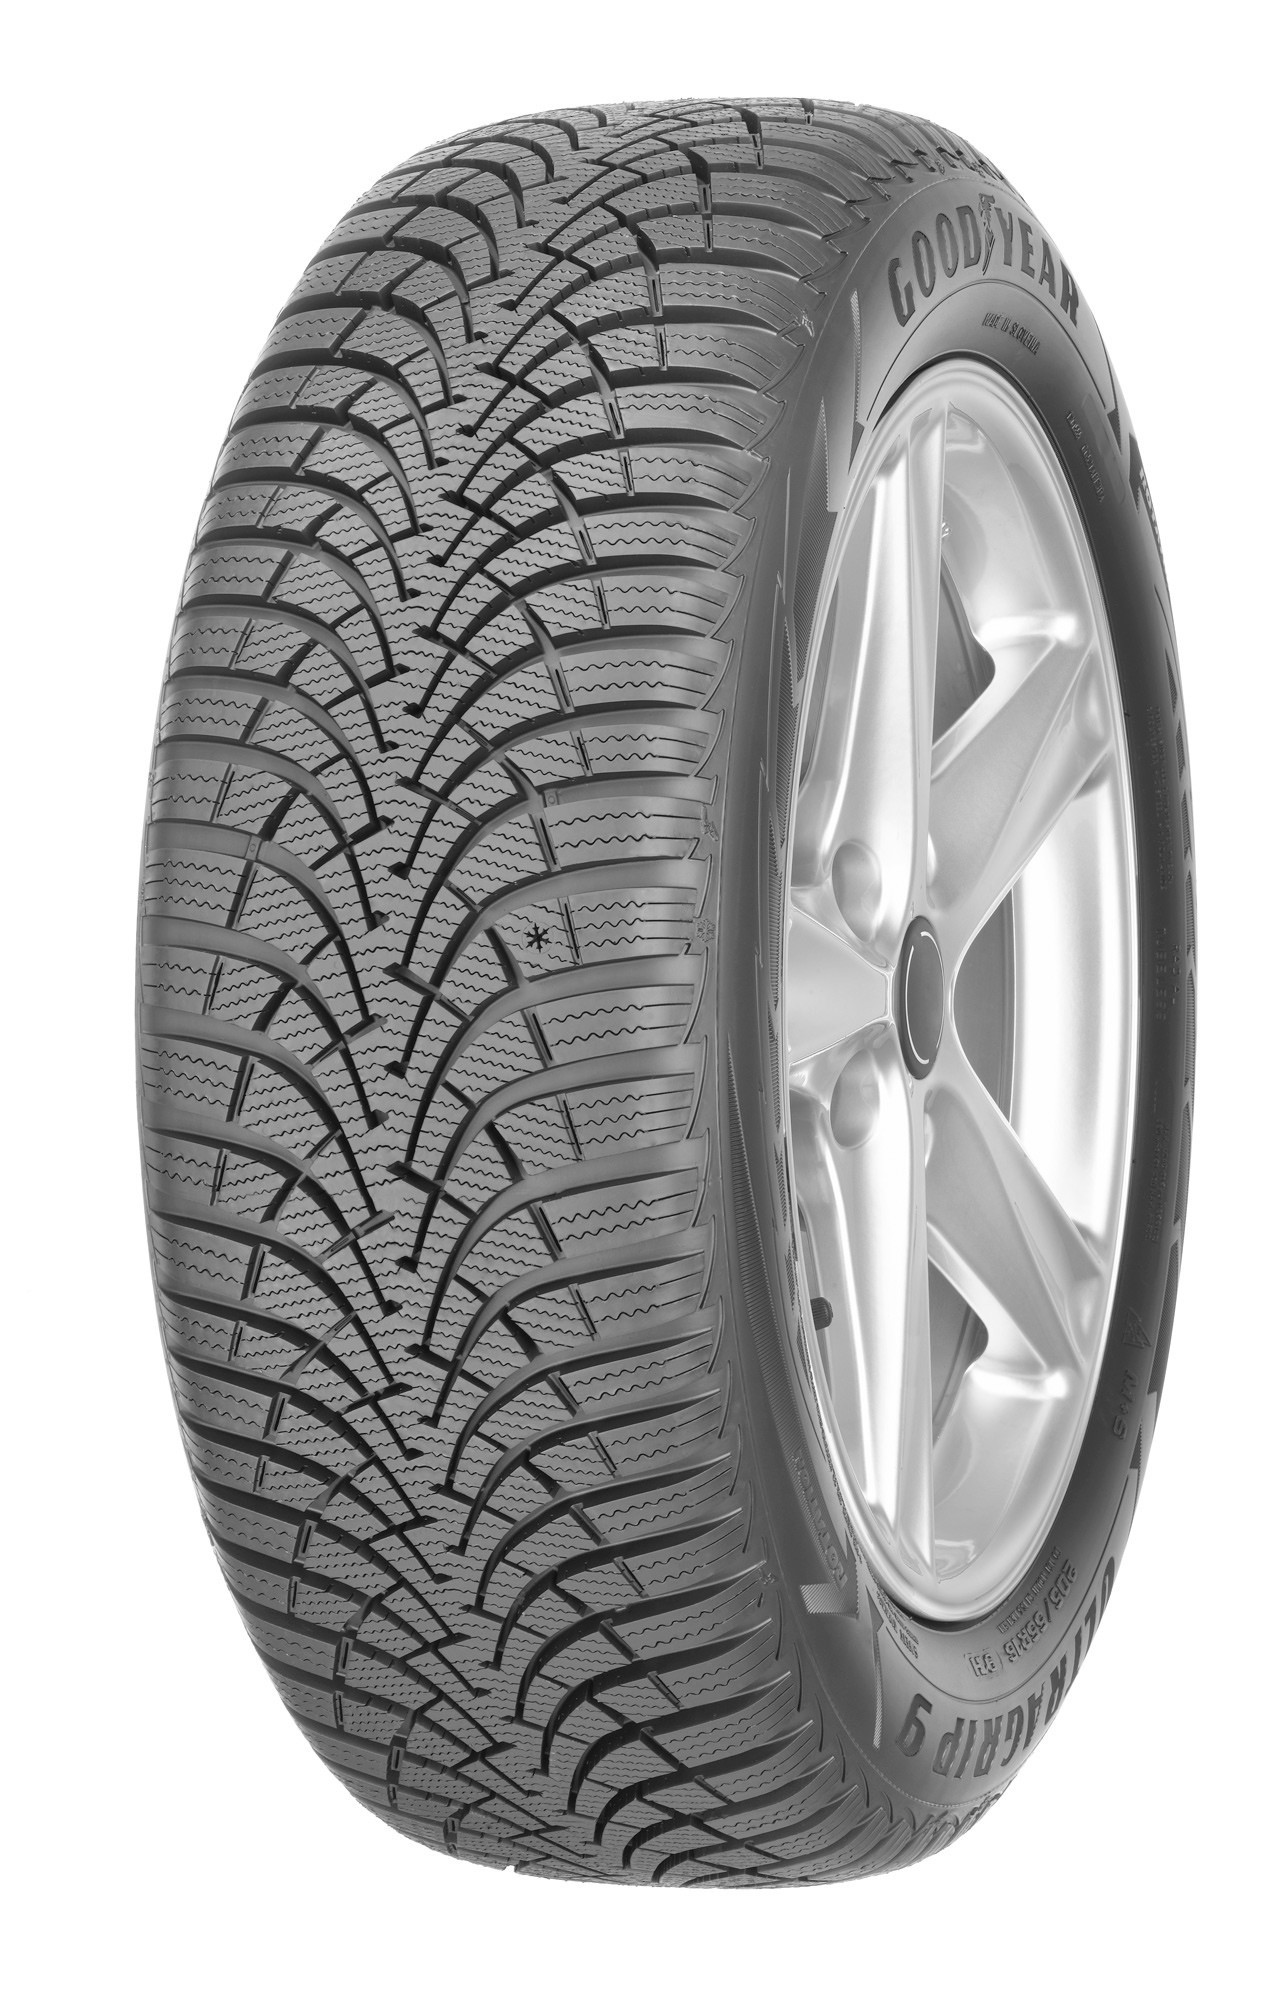 Anvelopa Iarna 205/55R16 91H Goodyear Ultra Grip 9 Ms